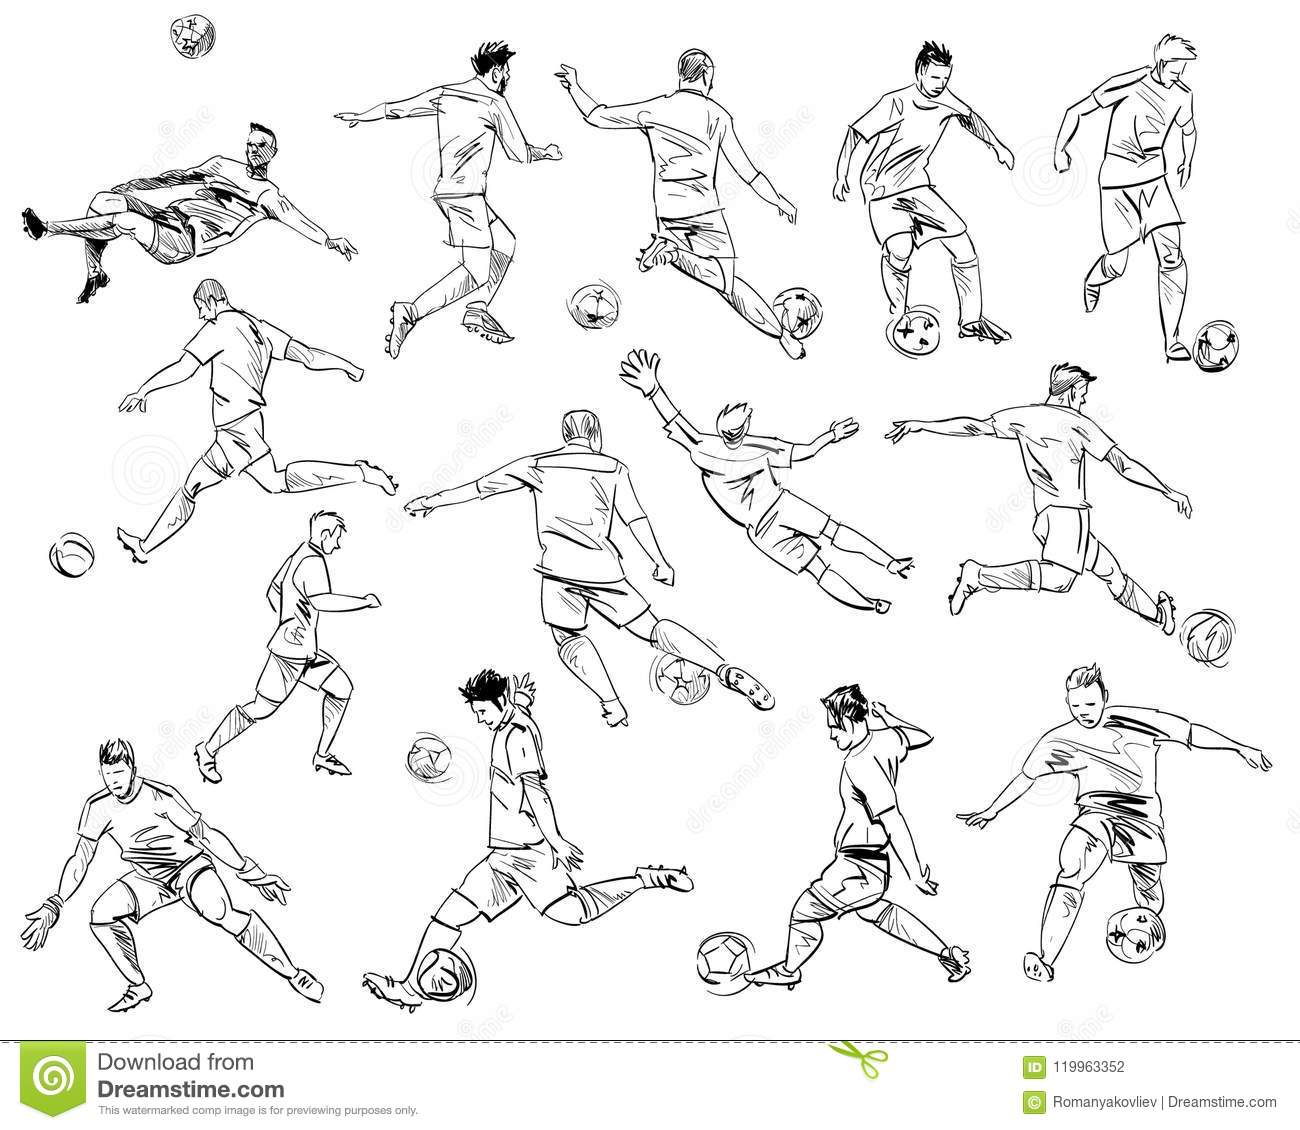 Football players in different poses hand drawn sketch vector illustration